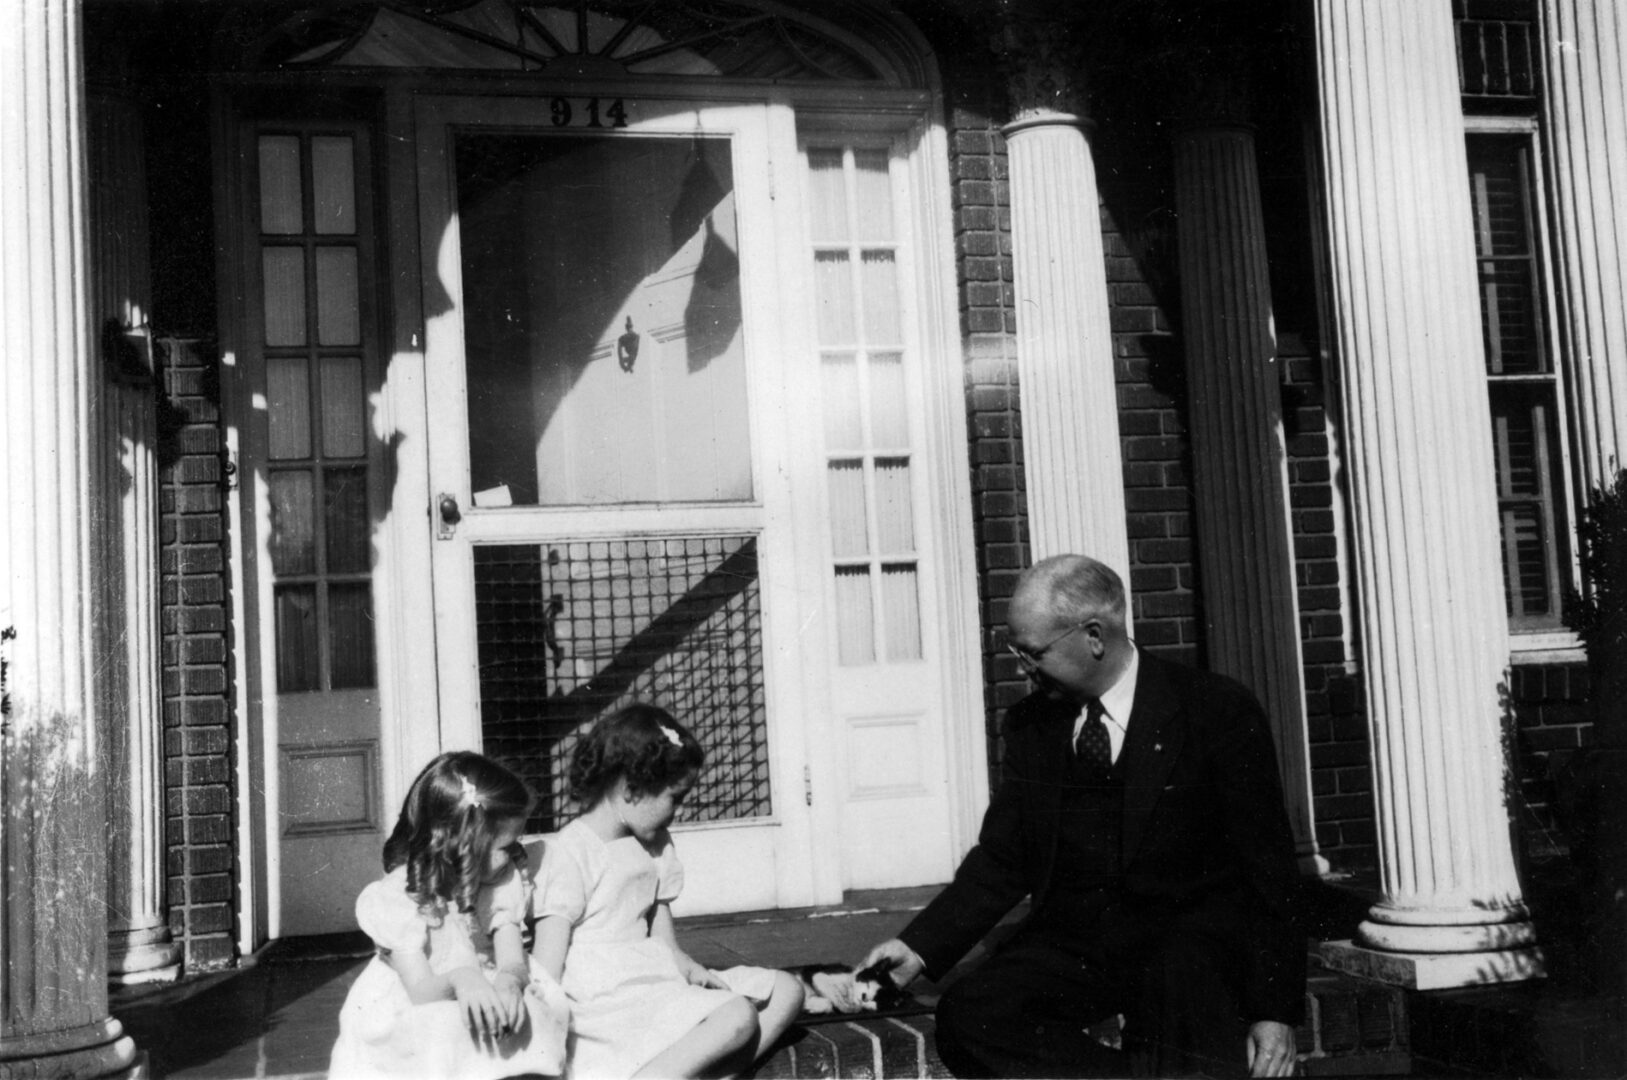 Demaris, Lillie, and Daddy with kitten on Atlanta porch